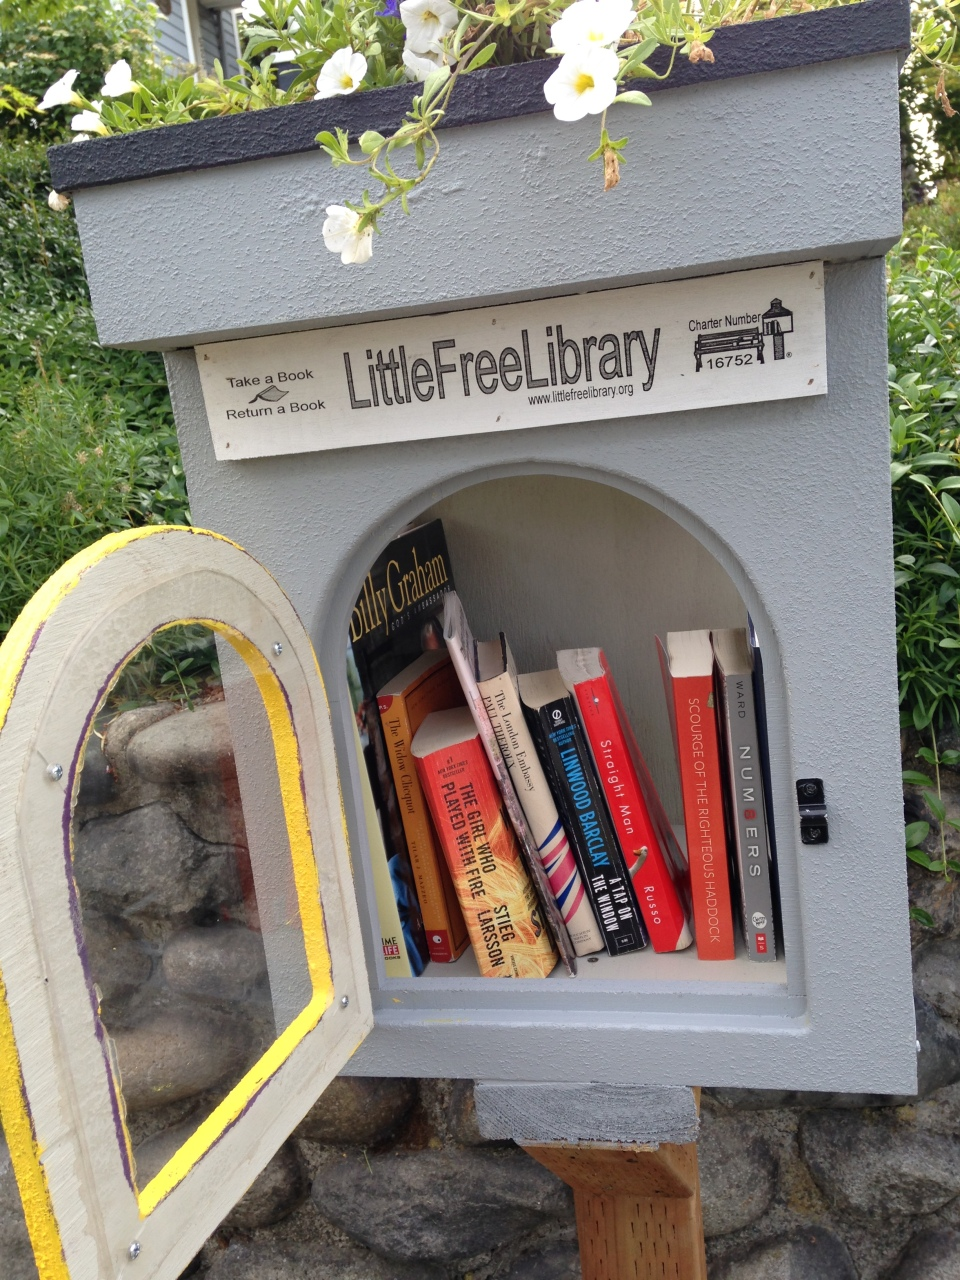 This Little Free Library is located in Phinney Ridge just above the Woodland Park Zoo. I thought the flowers were a nice tough and the selection wasn't too bad either.